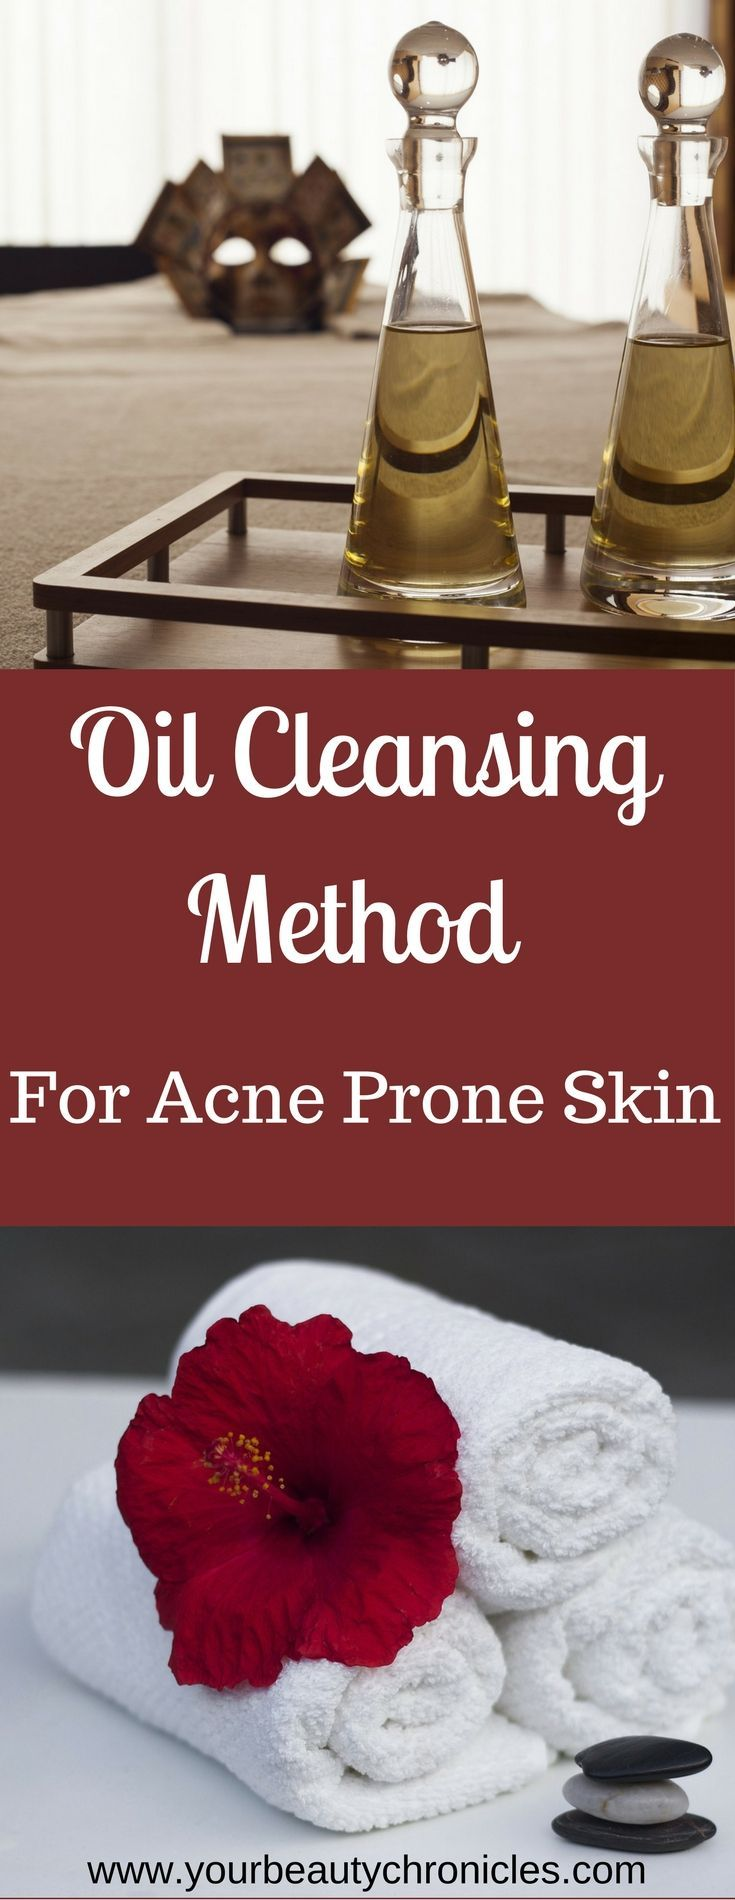 Why I Use The Oil Cleansing Method For My Acne Prone Skin